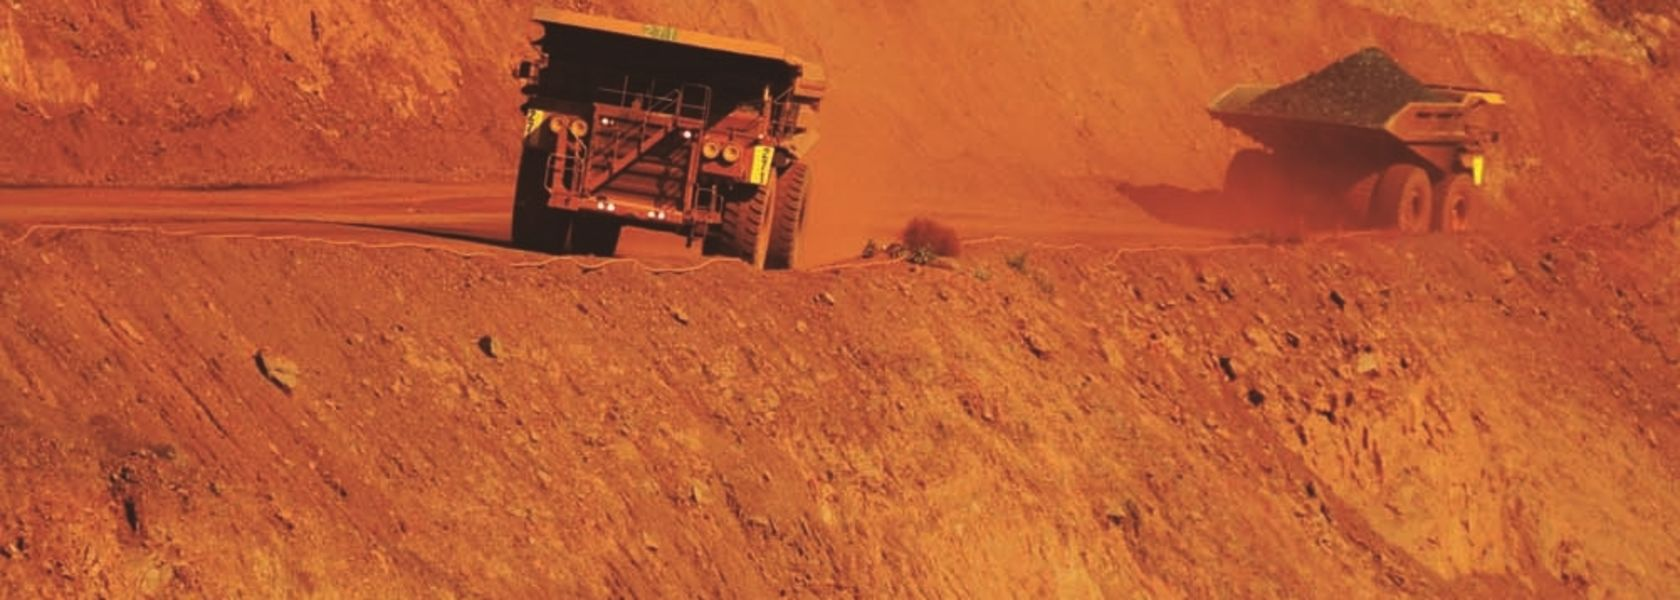 Runaway iron ore train prompts BHP to suspend rail ops